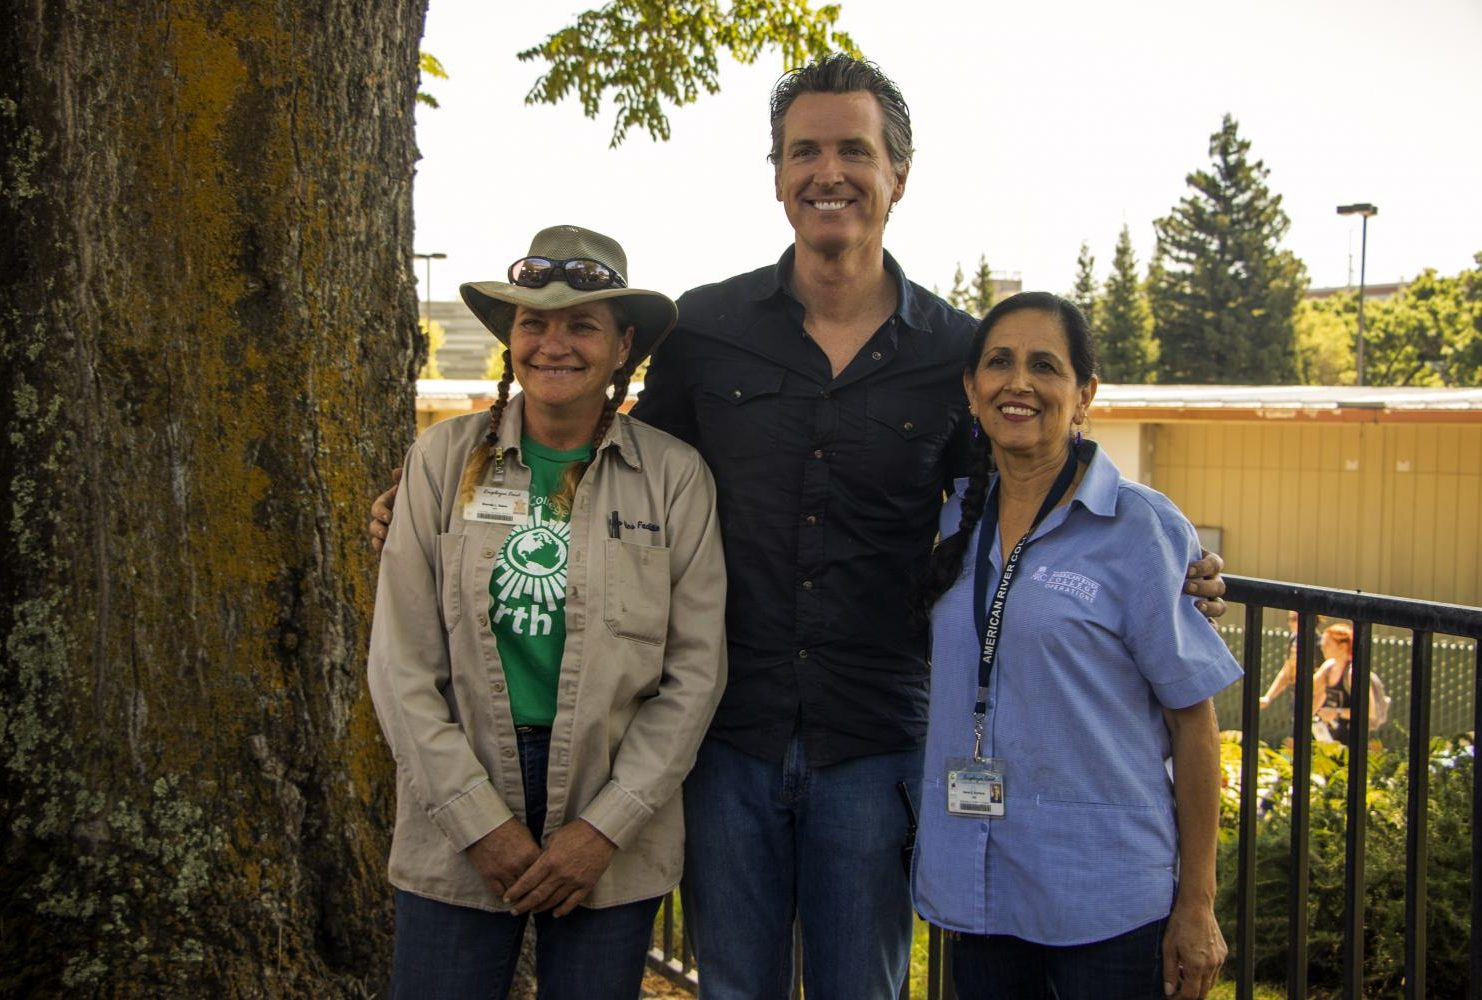 Governor Gavin Christopher Newsom poses with Brenda Baker (left) and Maria Arambula (right) after job shadowing them during International Workers' Day at American River College on May 1, 2019. (Photo by Ashley Hayes-Stone) Download Permiss